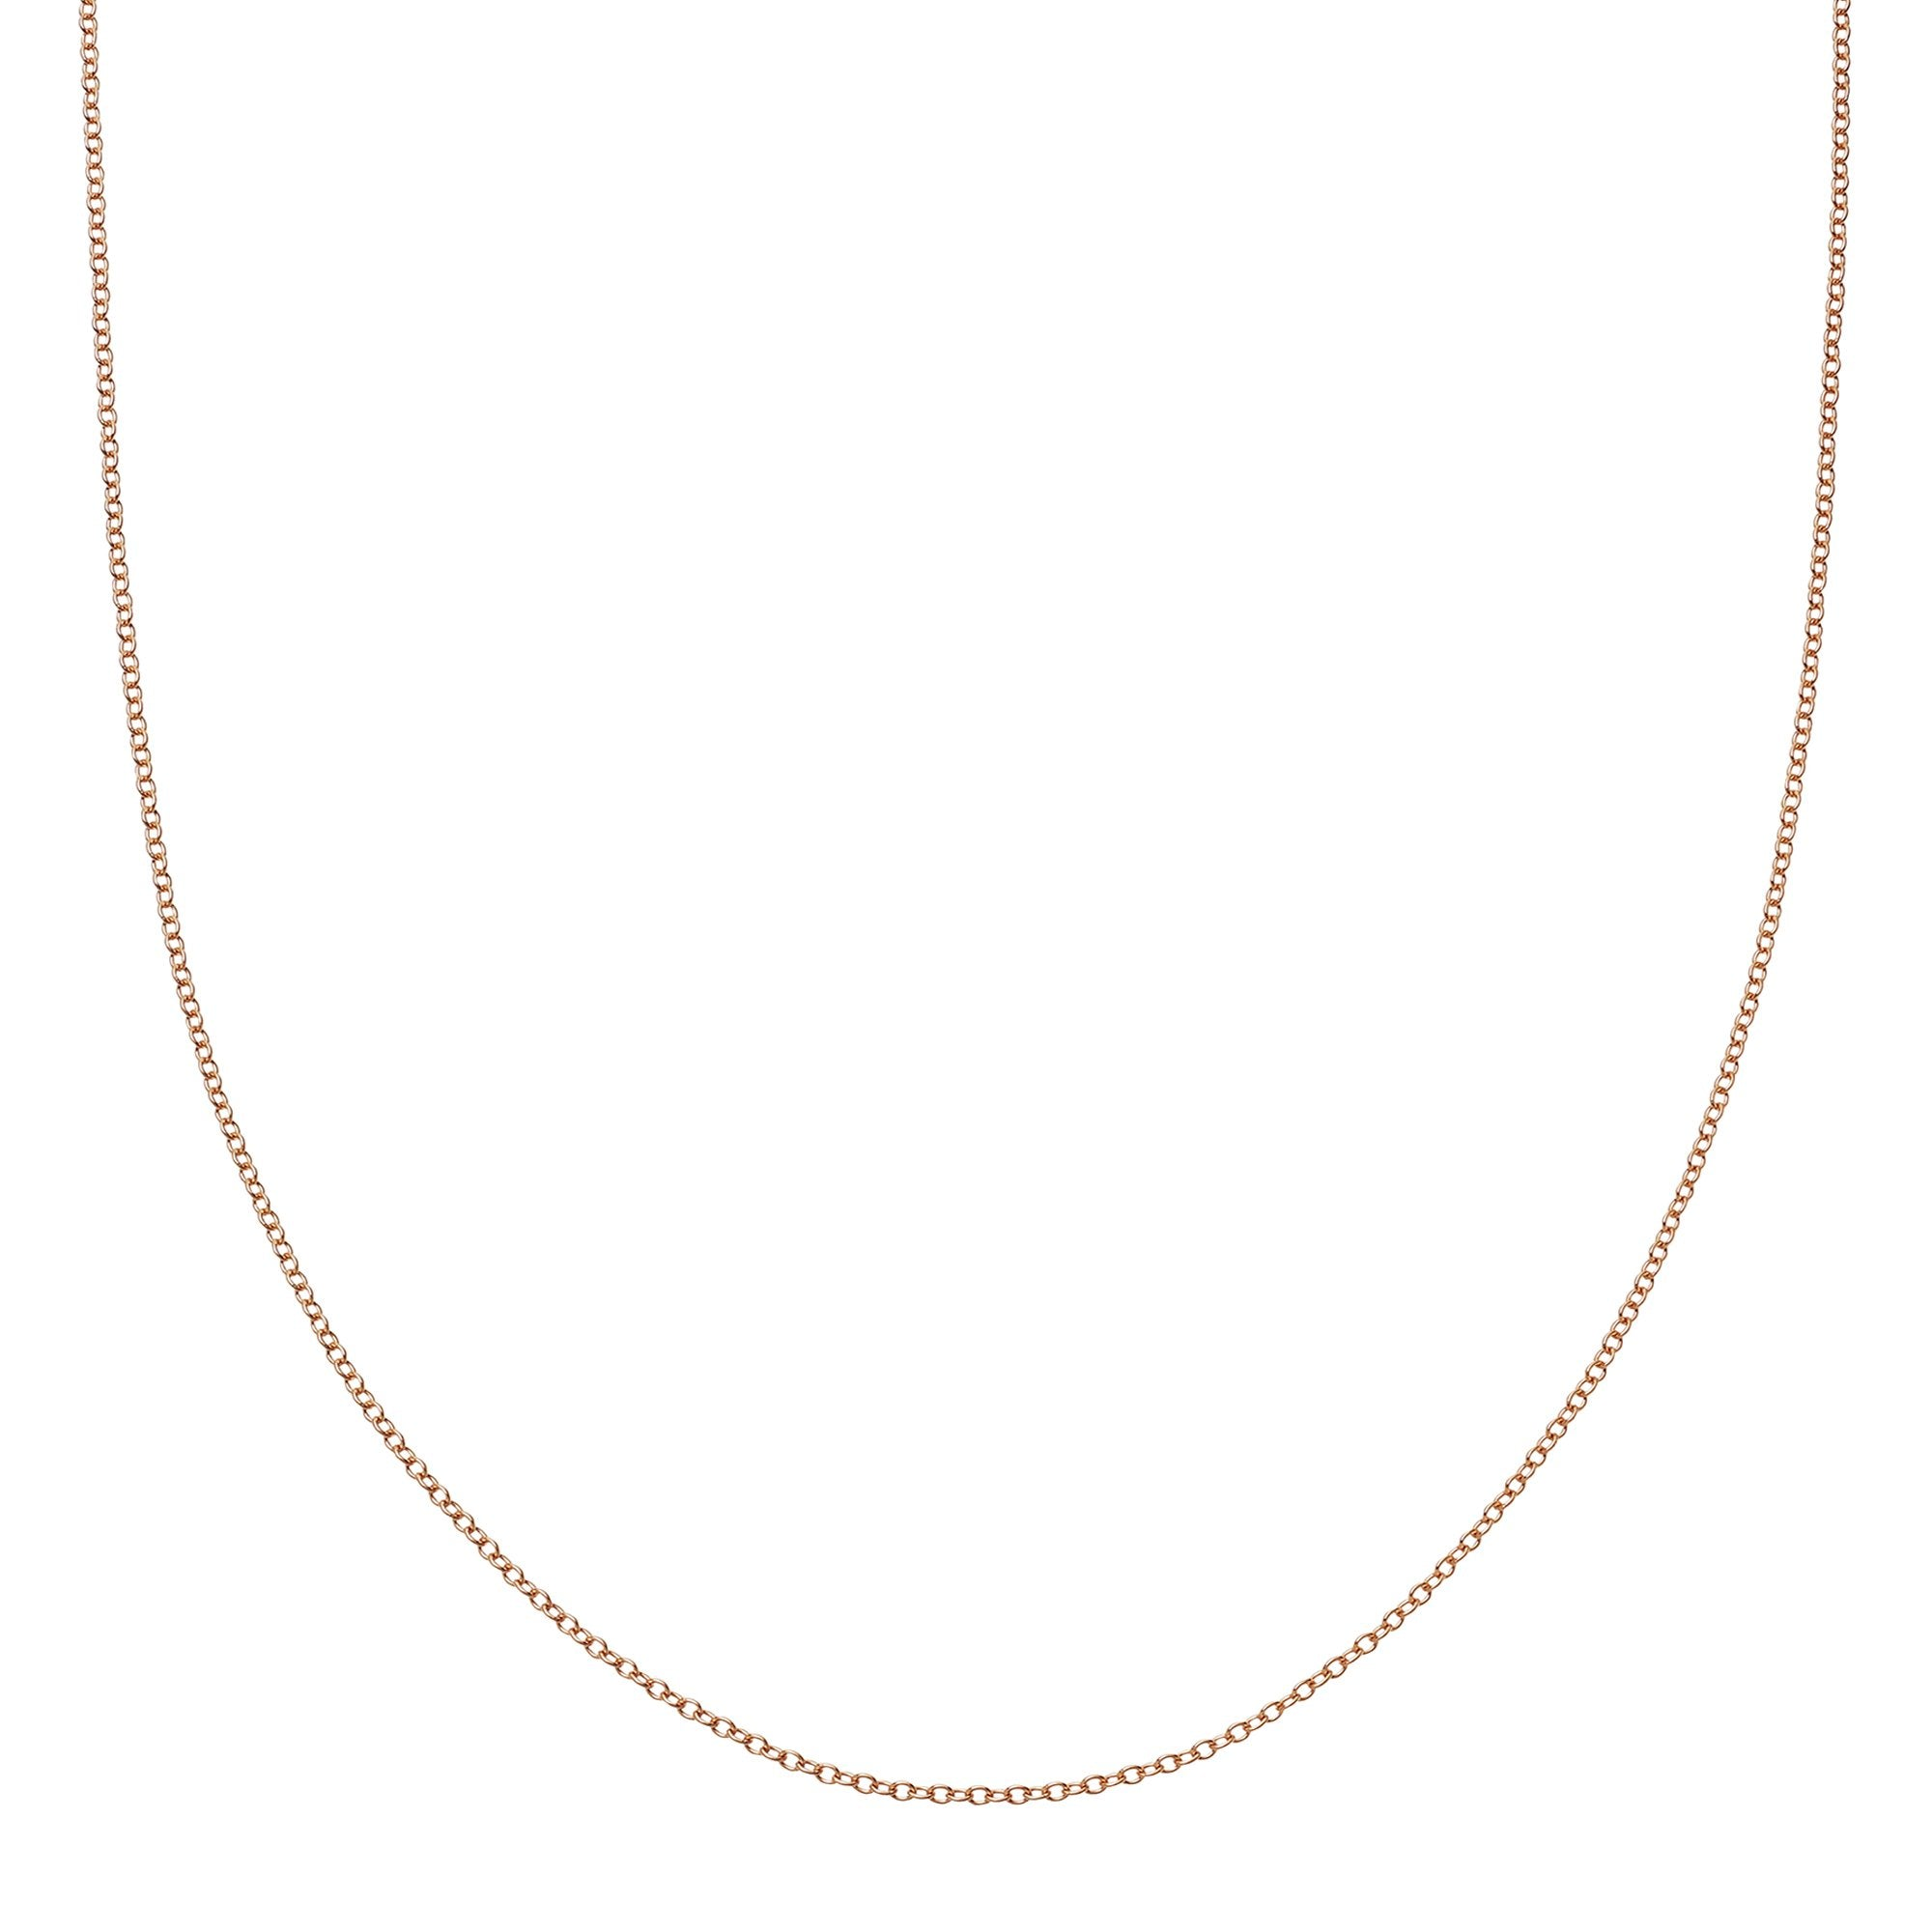 "Loquet 32"" Chain - Rose Gold - Necklaces - Broken English Jewelry"